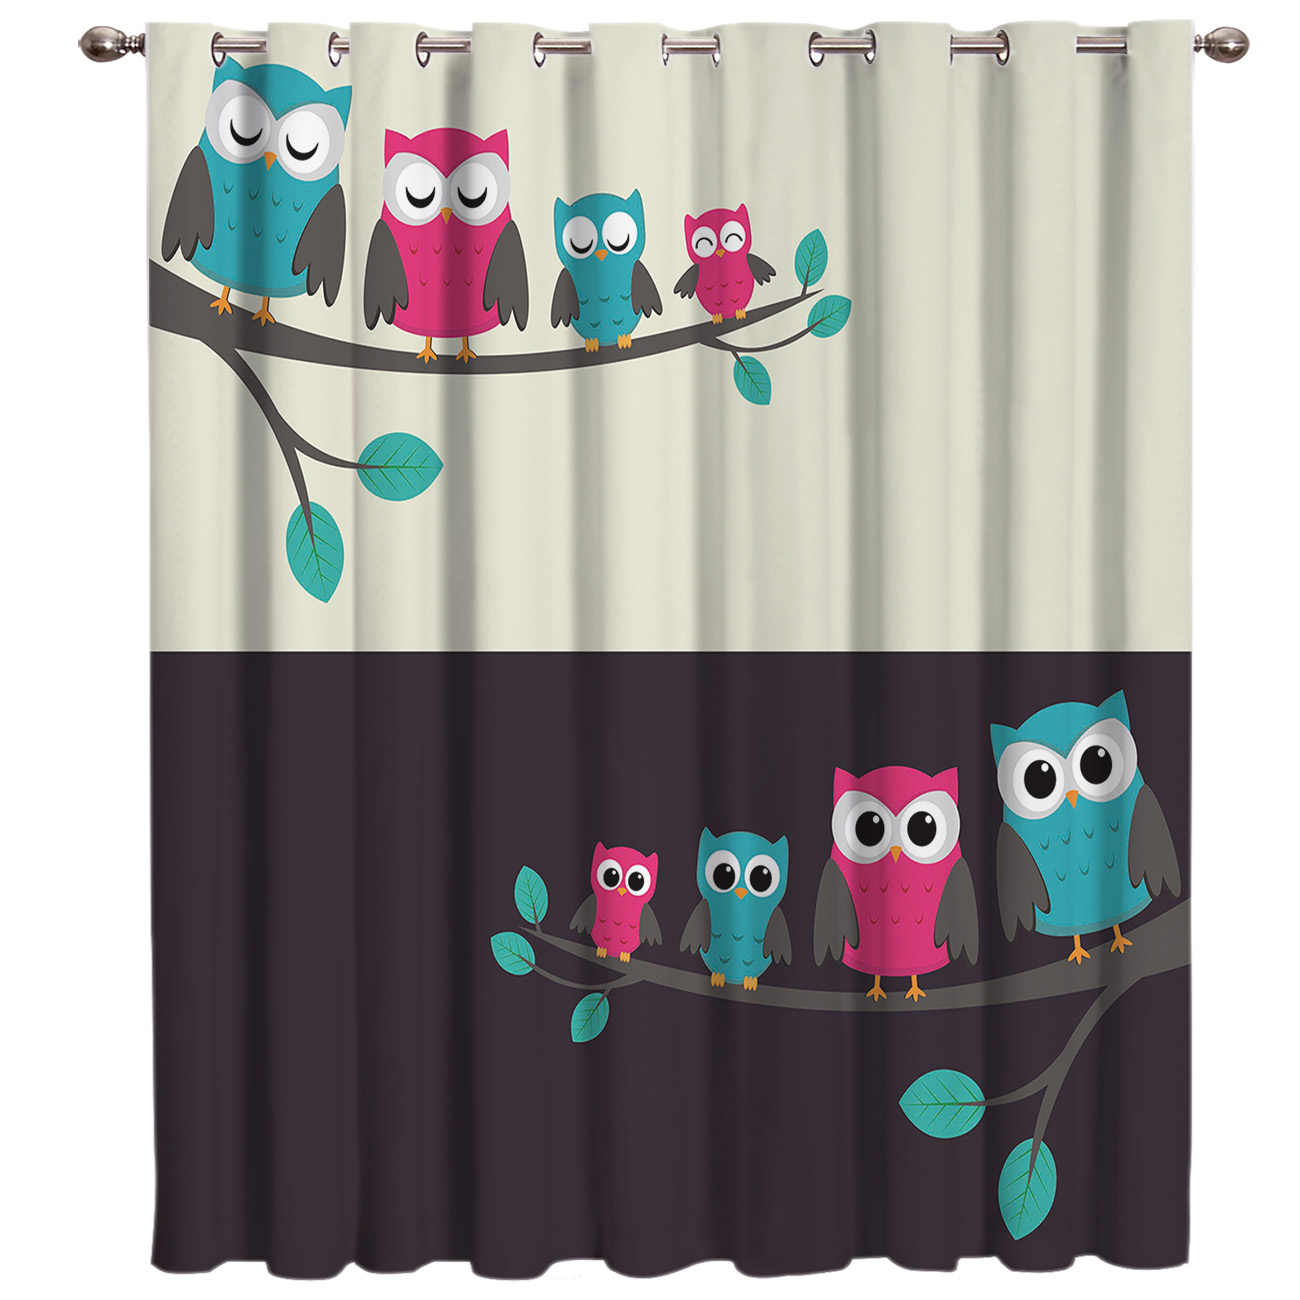 Cartoon Animals Cute Owl In The Day And Night Window Treatments Curtains Valance Room Curtains Large Window Window Curtains Dark